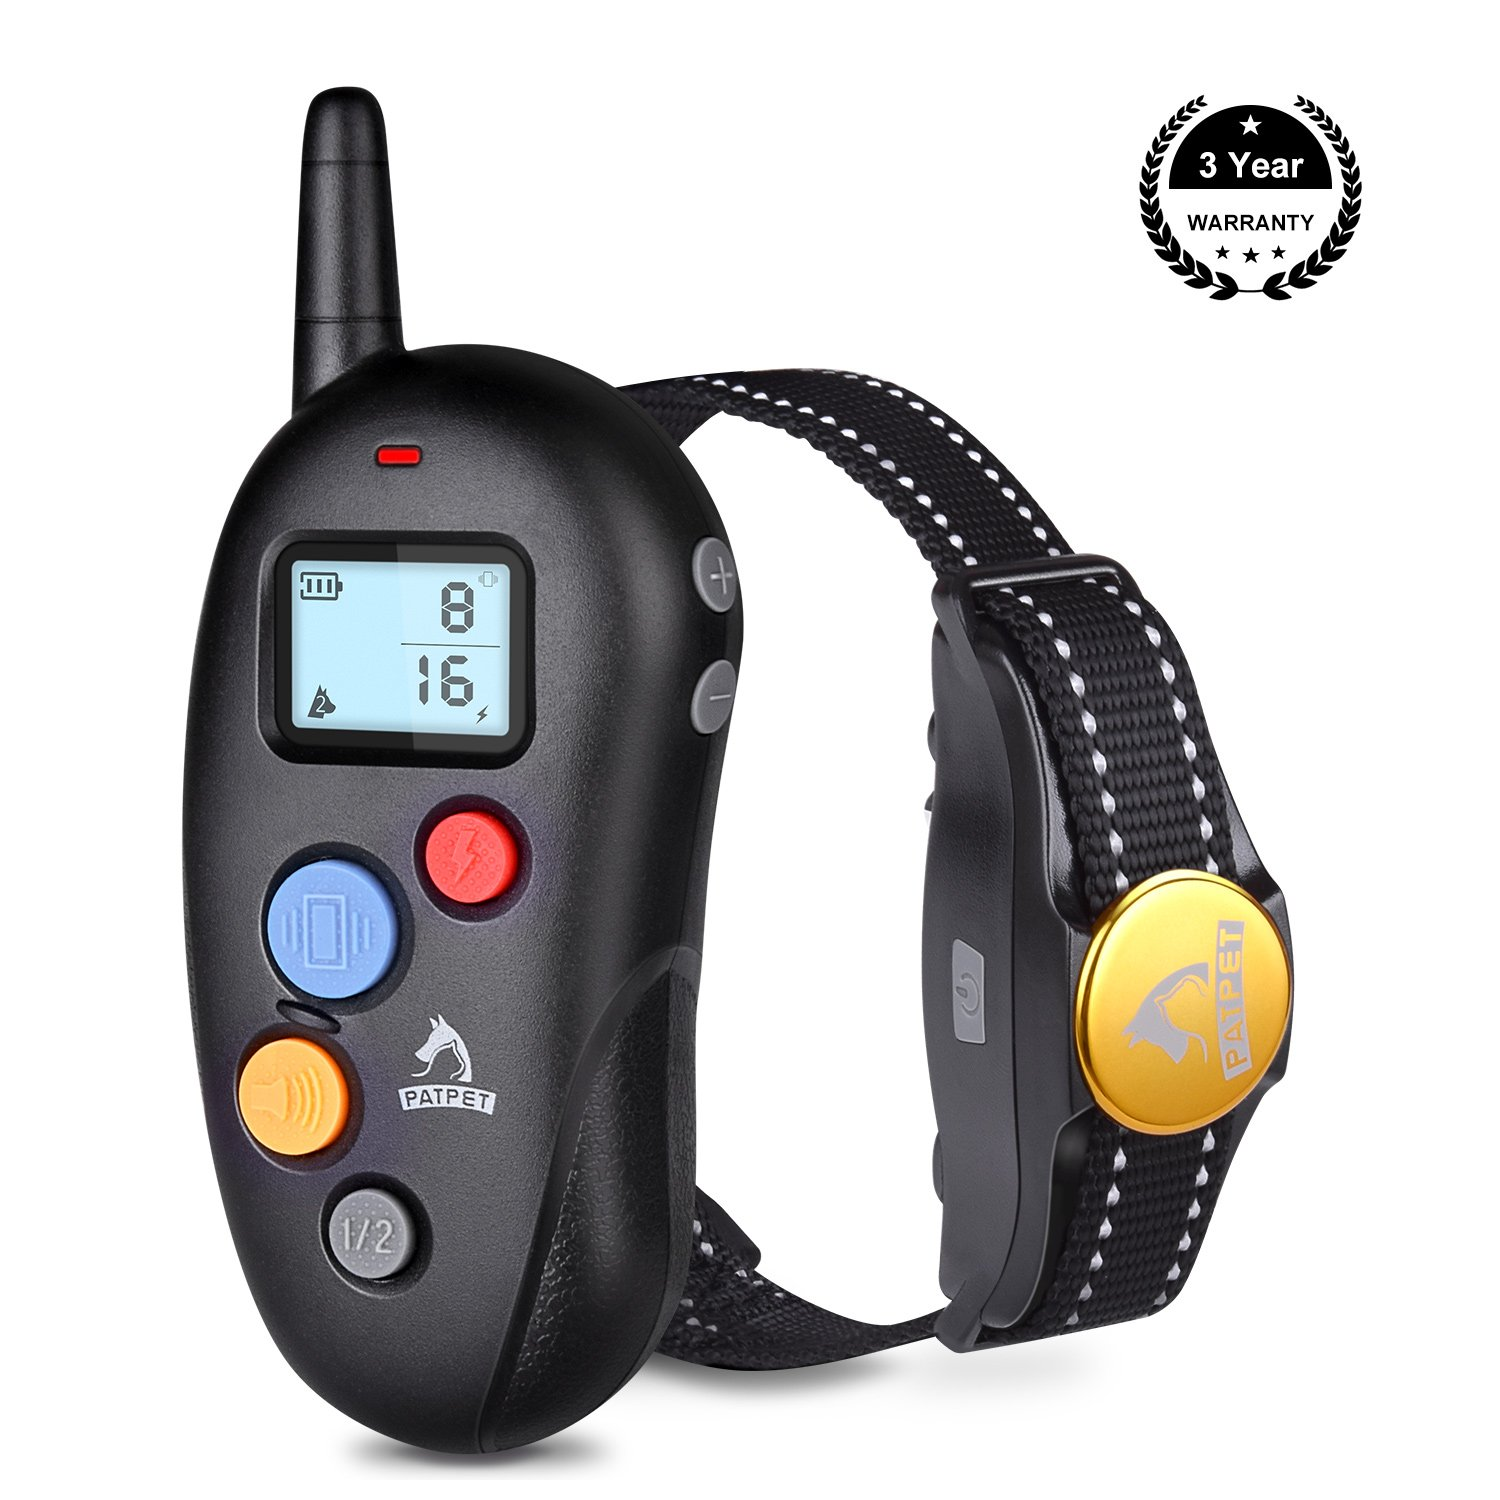 Black TOPPLE Rechargeable Dog Training Collar with Remote Waterproof Dog Shock Collar with Remote Bark Collar for Dogs Small Medium Large 10-88lbs